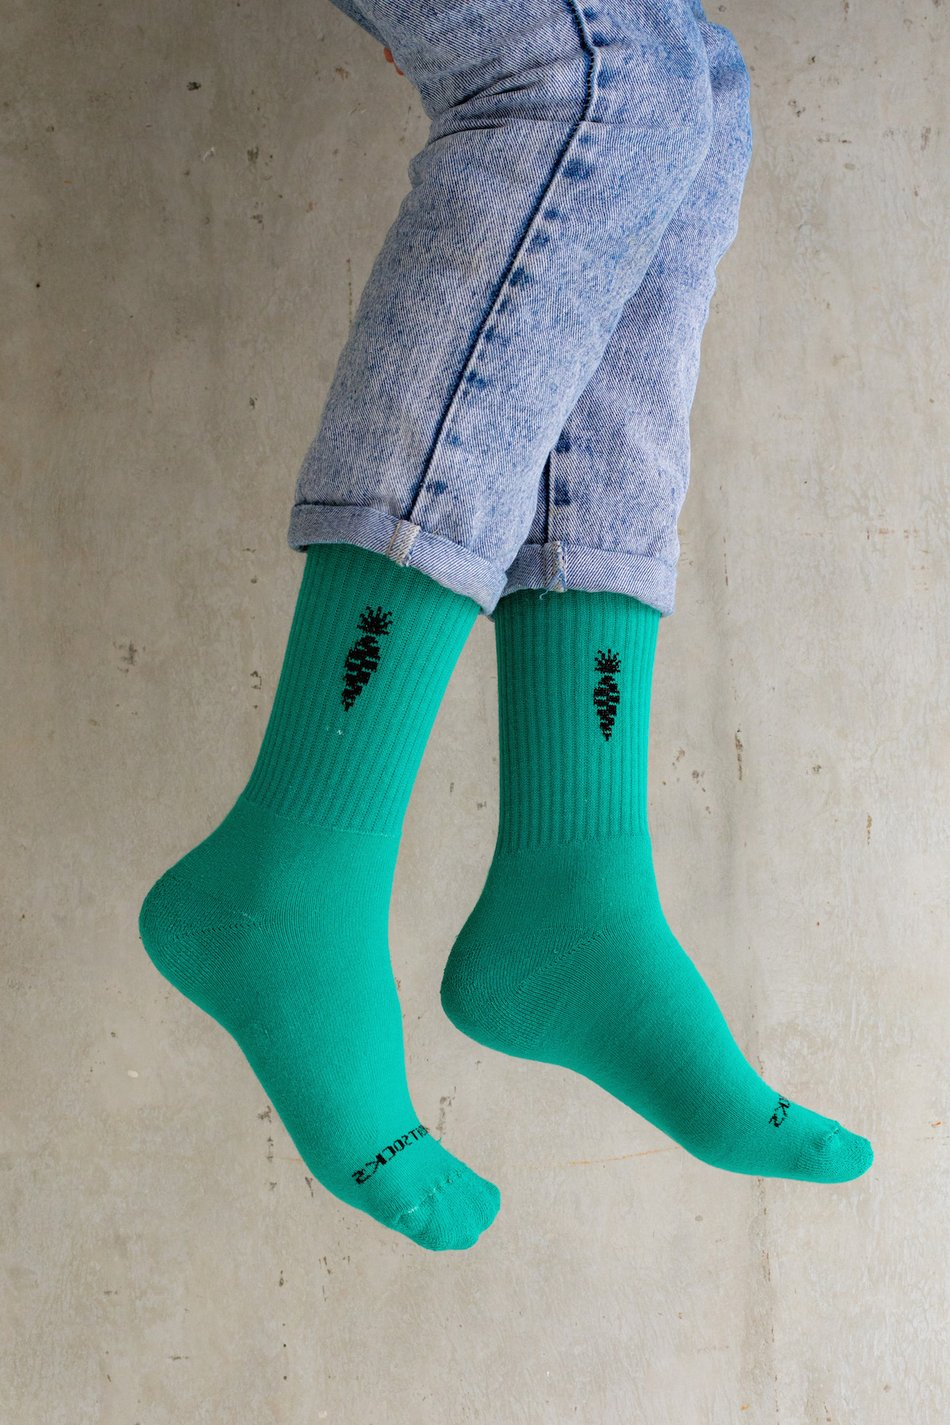 MEIA VERDE MENTA - THE RABBIT SOCKS